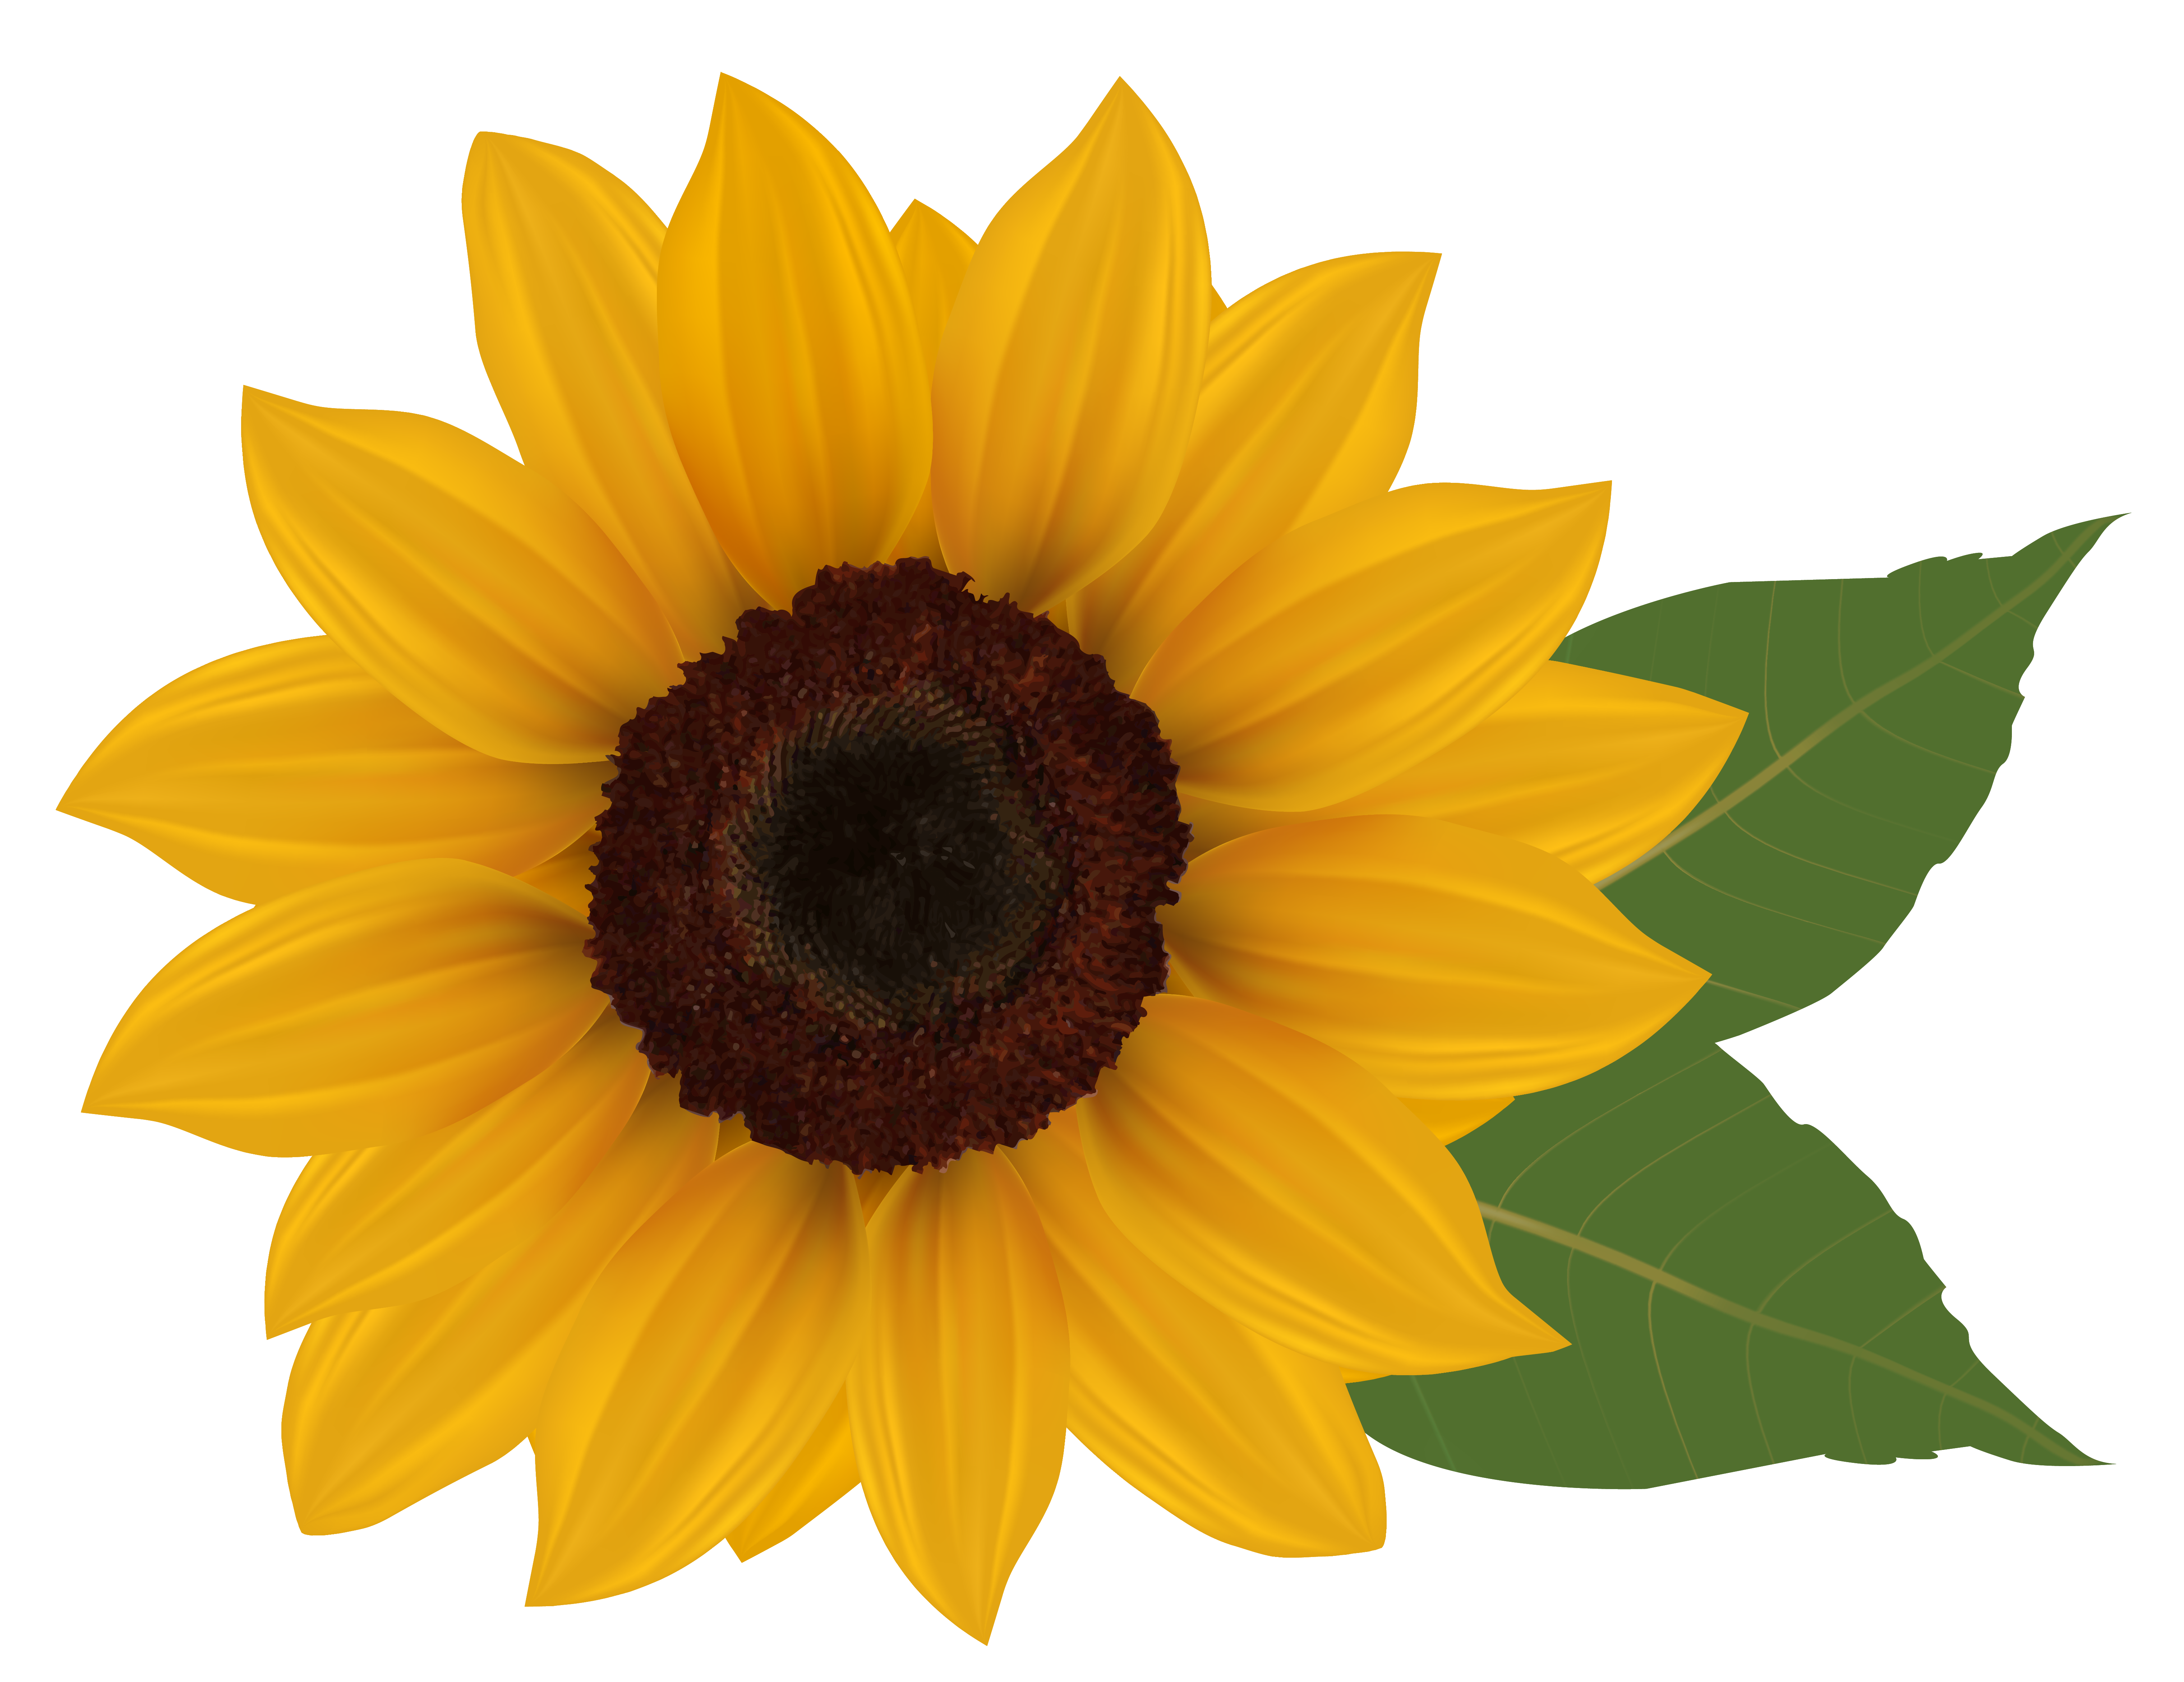 PNG Sunflower - 58134